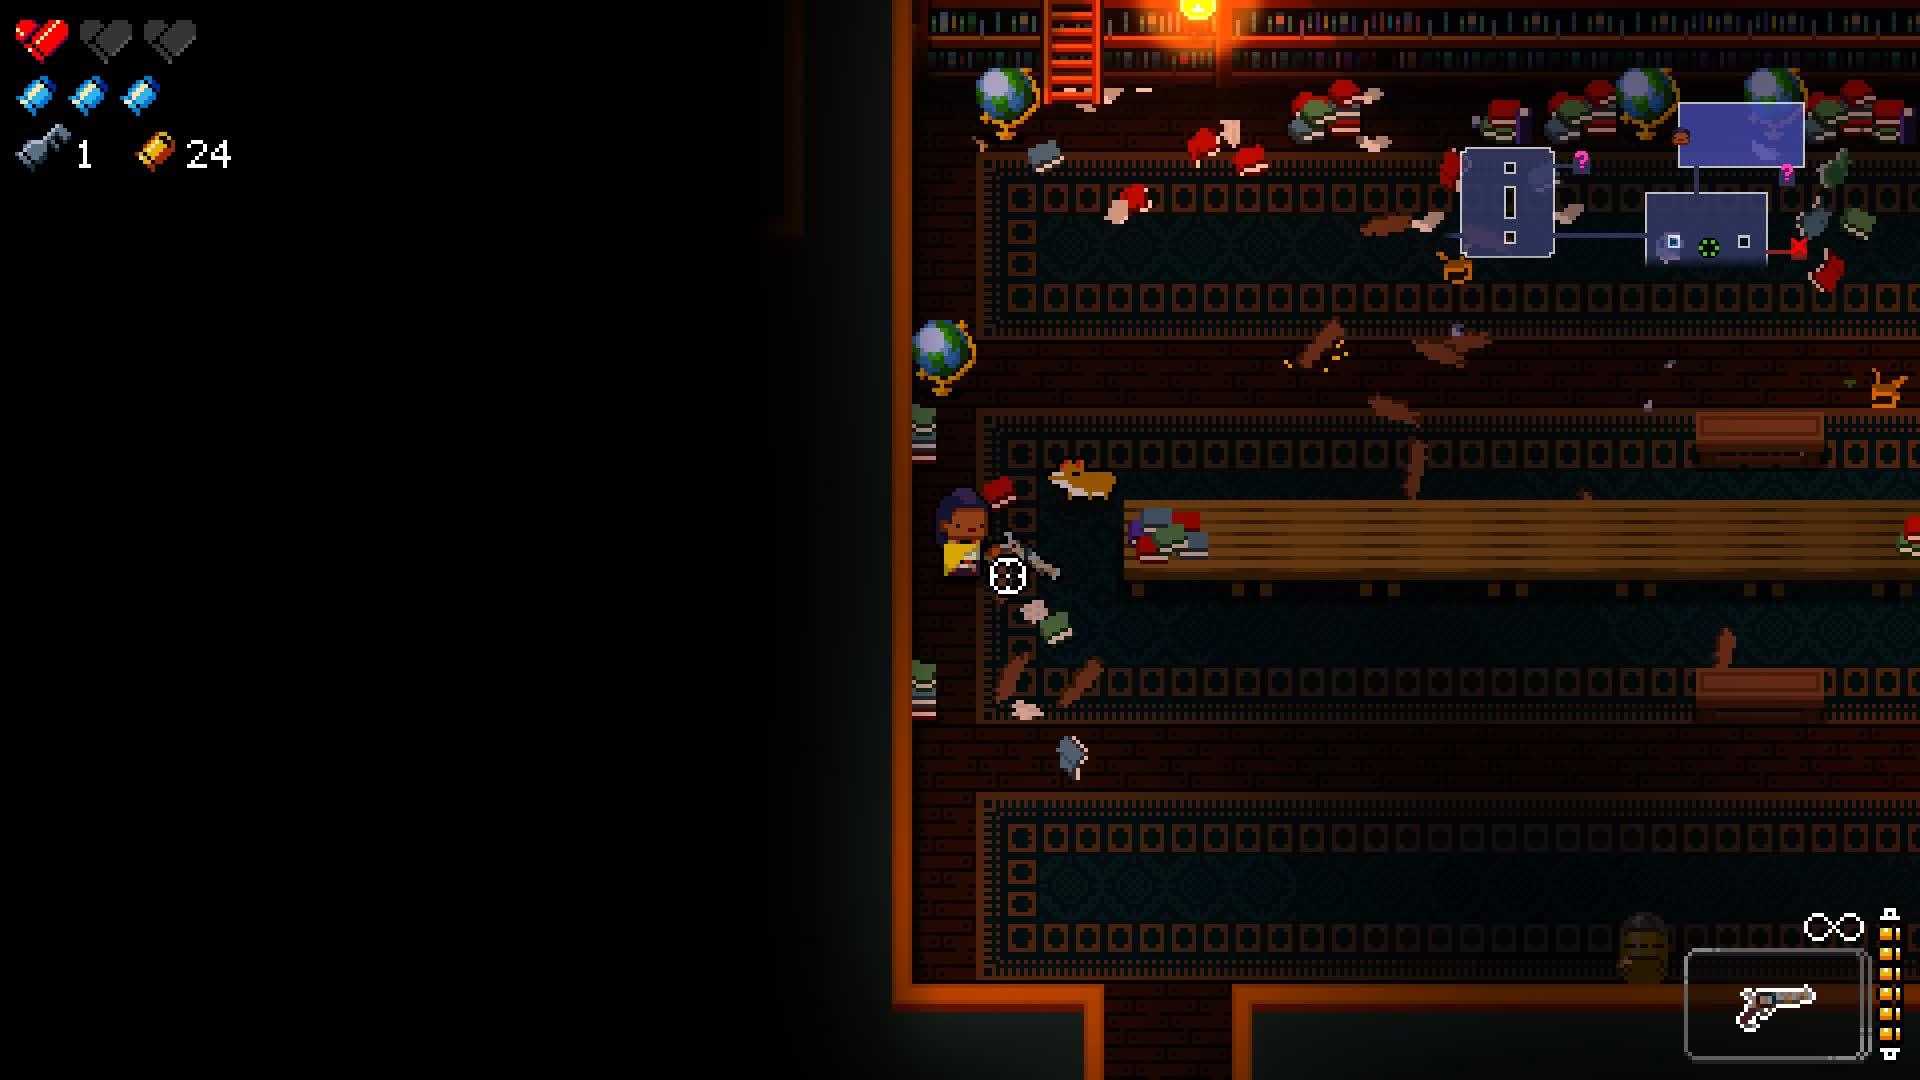 enterthegungeon, Enter the Gungeon 2019.01.27 - 10.07.24.01 GIFs